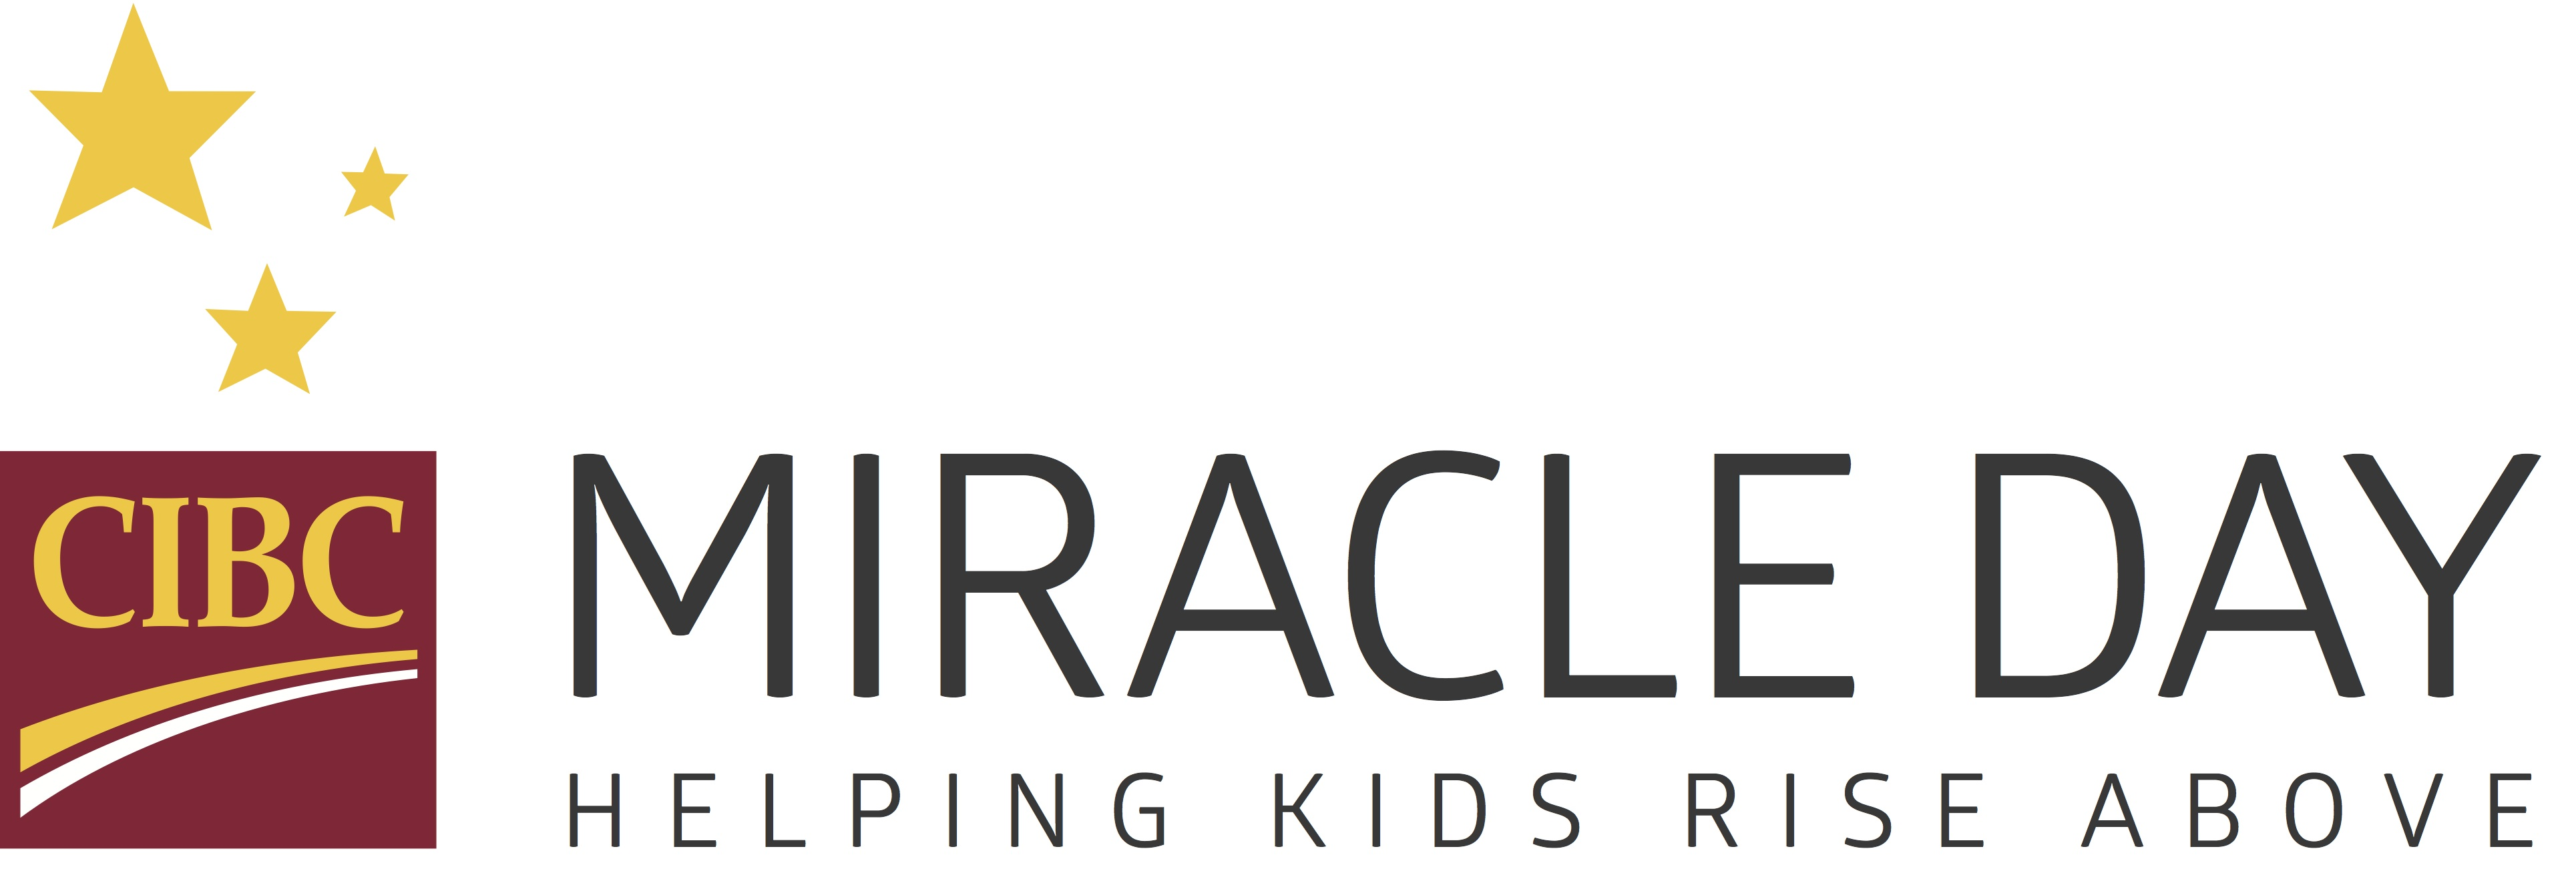 Miracle_Day_LOGO_ENG_COLOUR